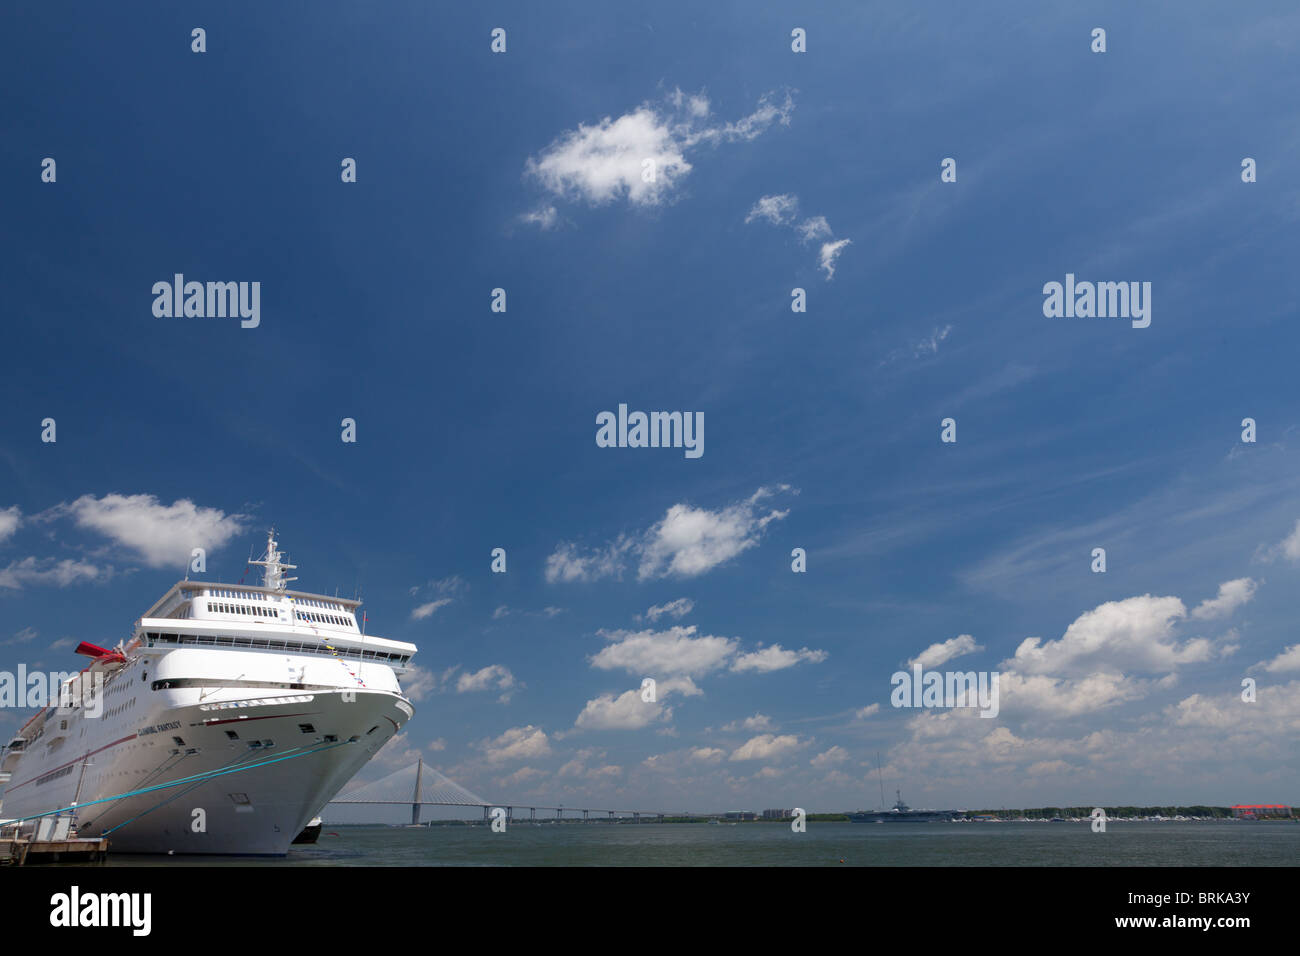 Carnival Triumph Cruise Ship Charleston South Carolina USA Stock - Cruise ships out of charleston south carolina